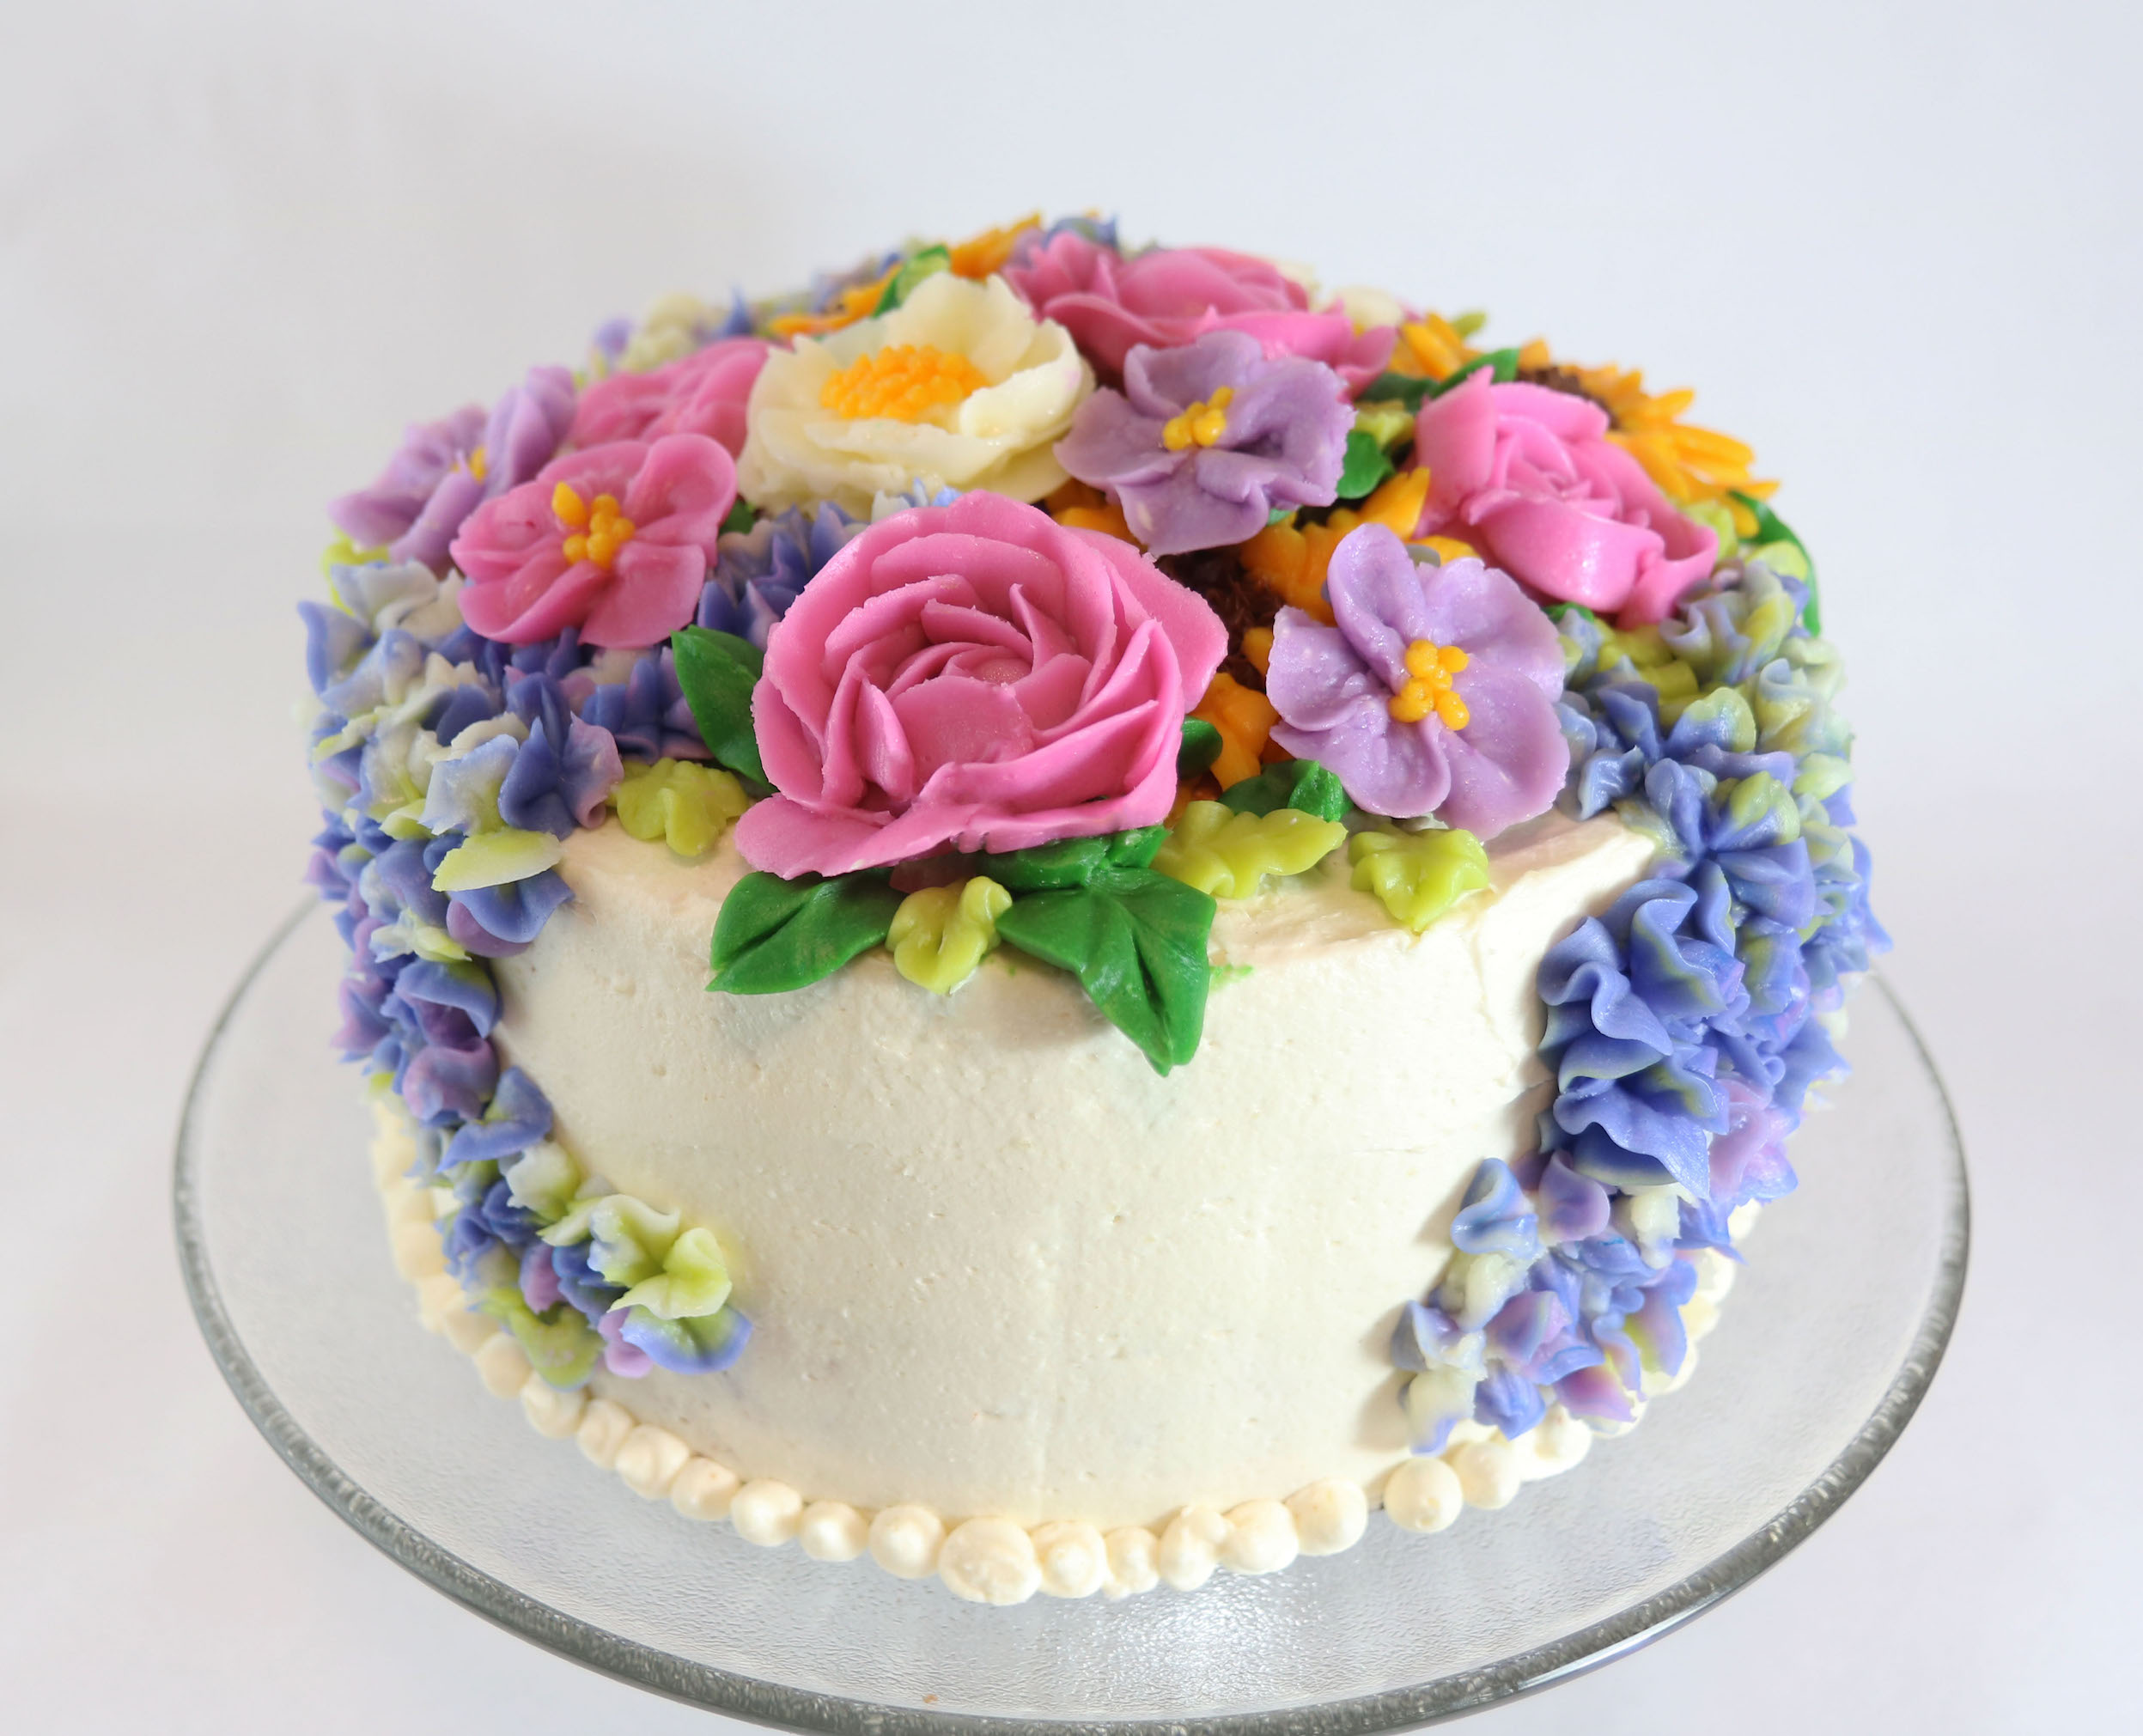 How To Make Cream Flowers On Cake